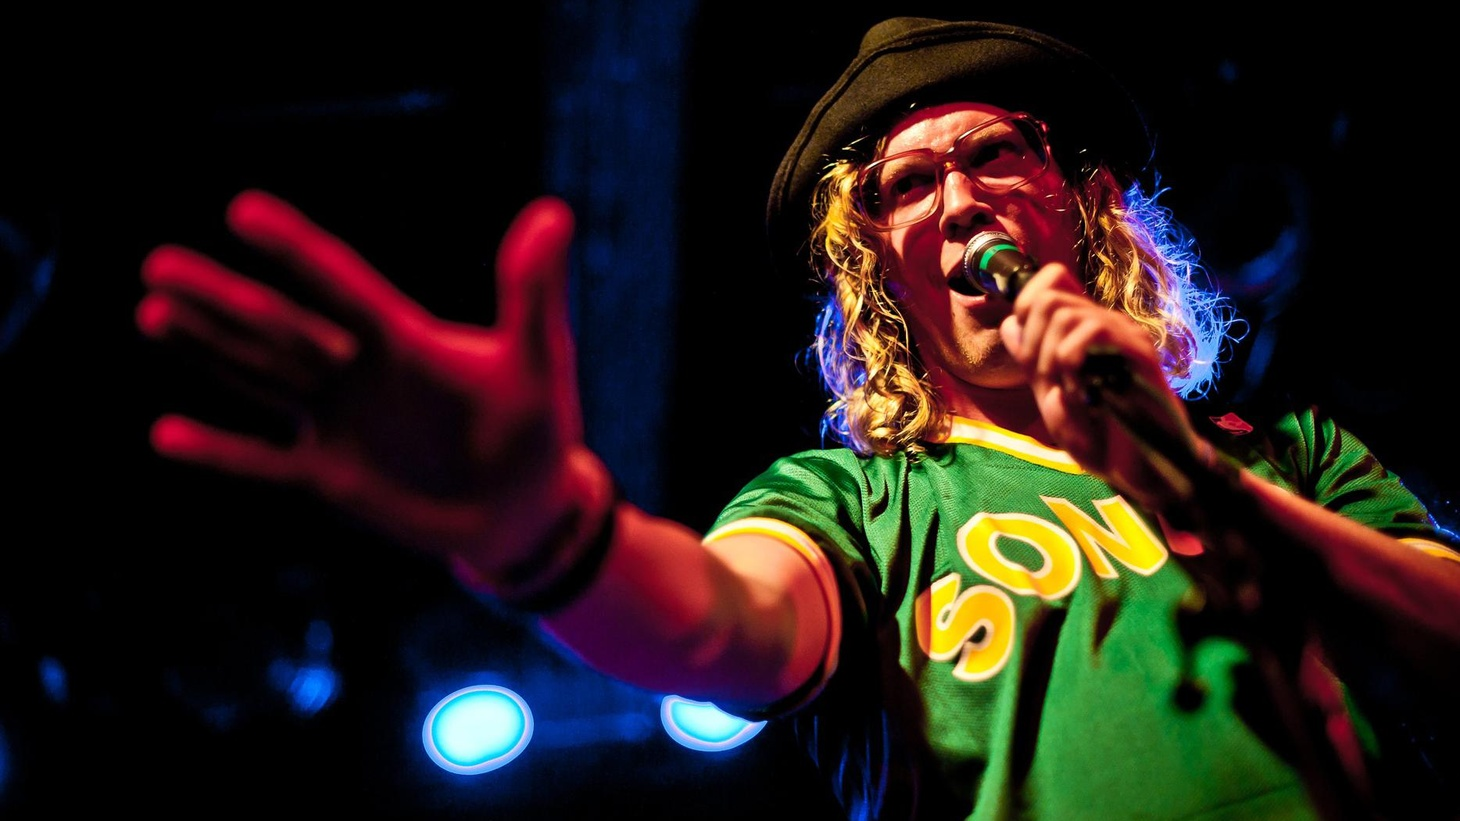 R&B singer Allen Stone has been gaining steam over the last year with a confessional lyrical style that integrates classic soul with catchy hooks.